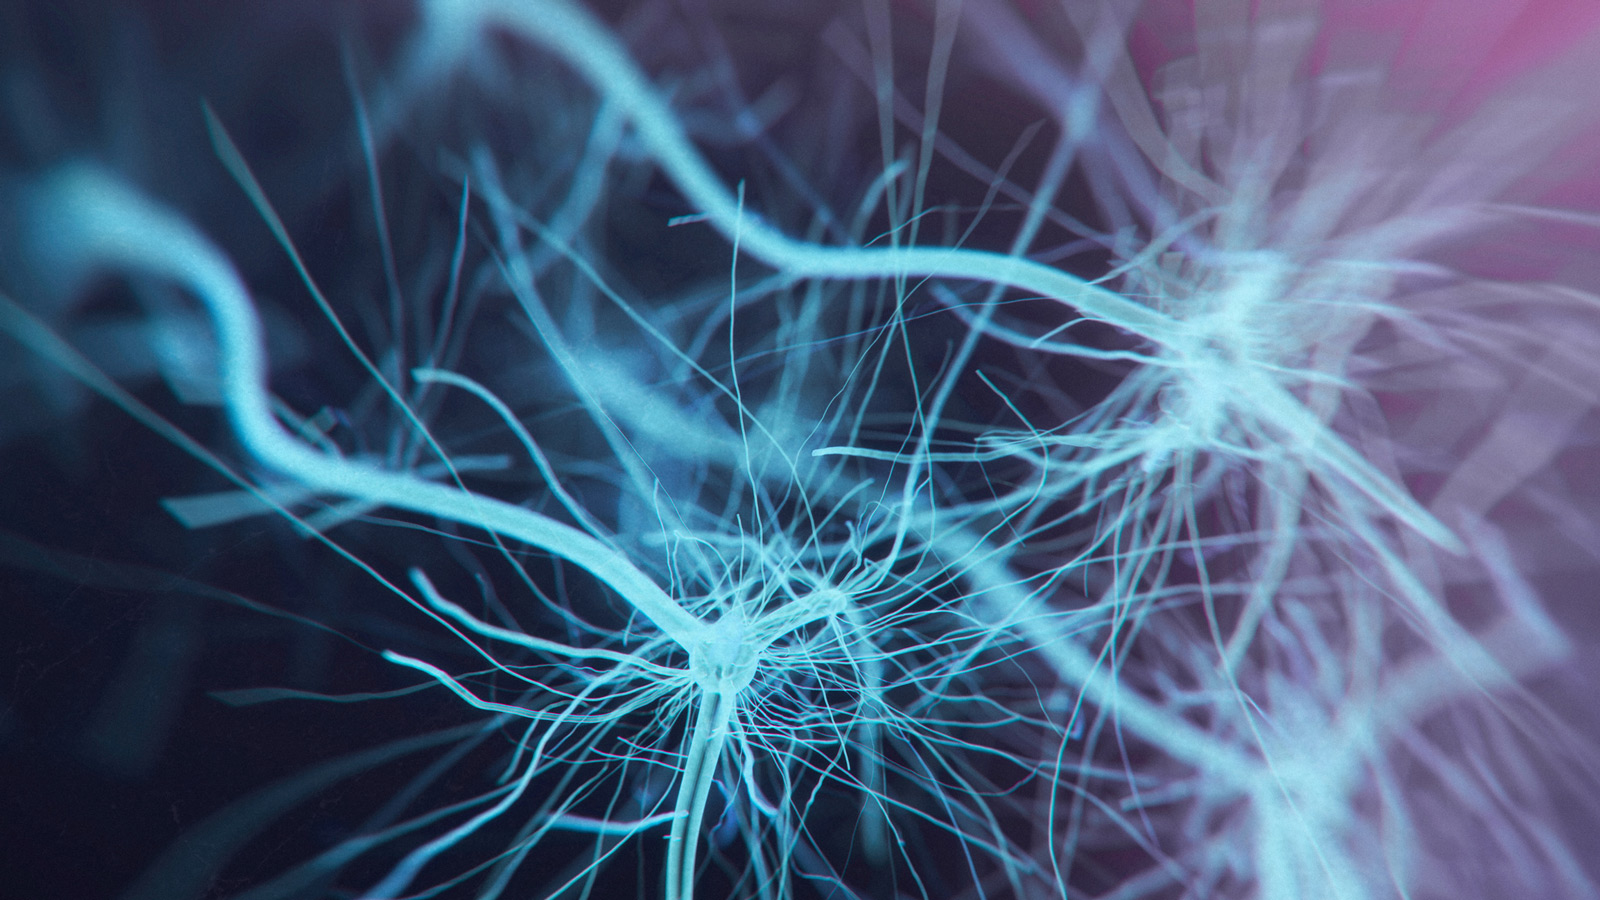 a blue and purple image of neurons